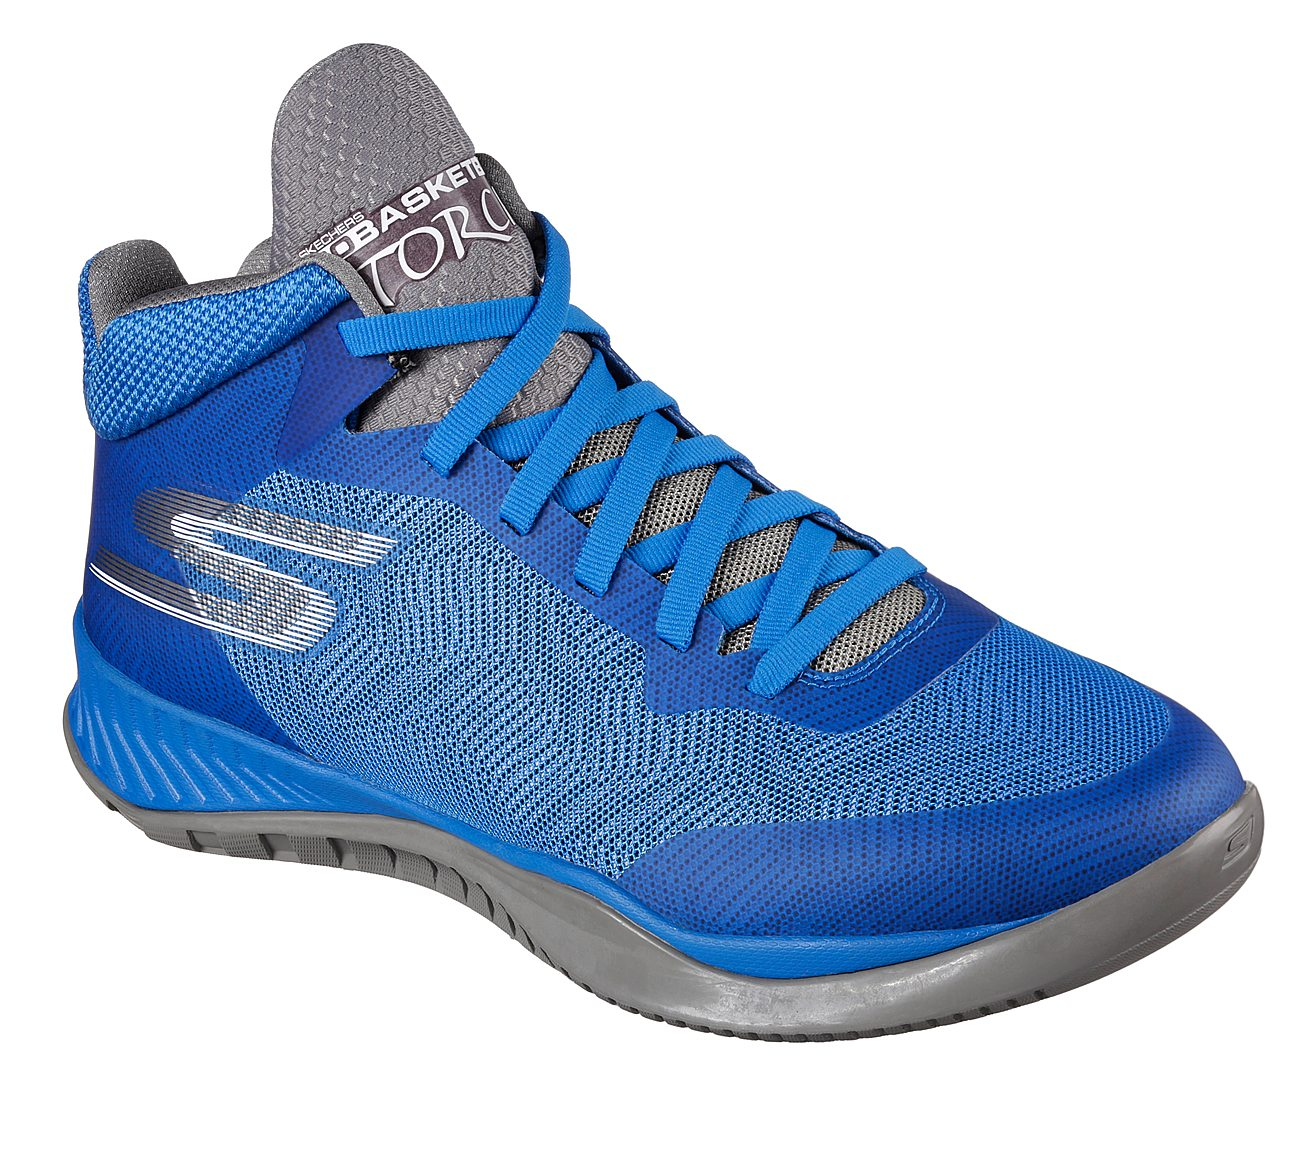 SKECHERS GO BASKETBALL - TORCH 2 – The